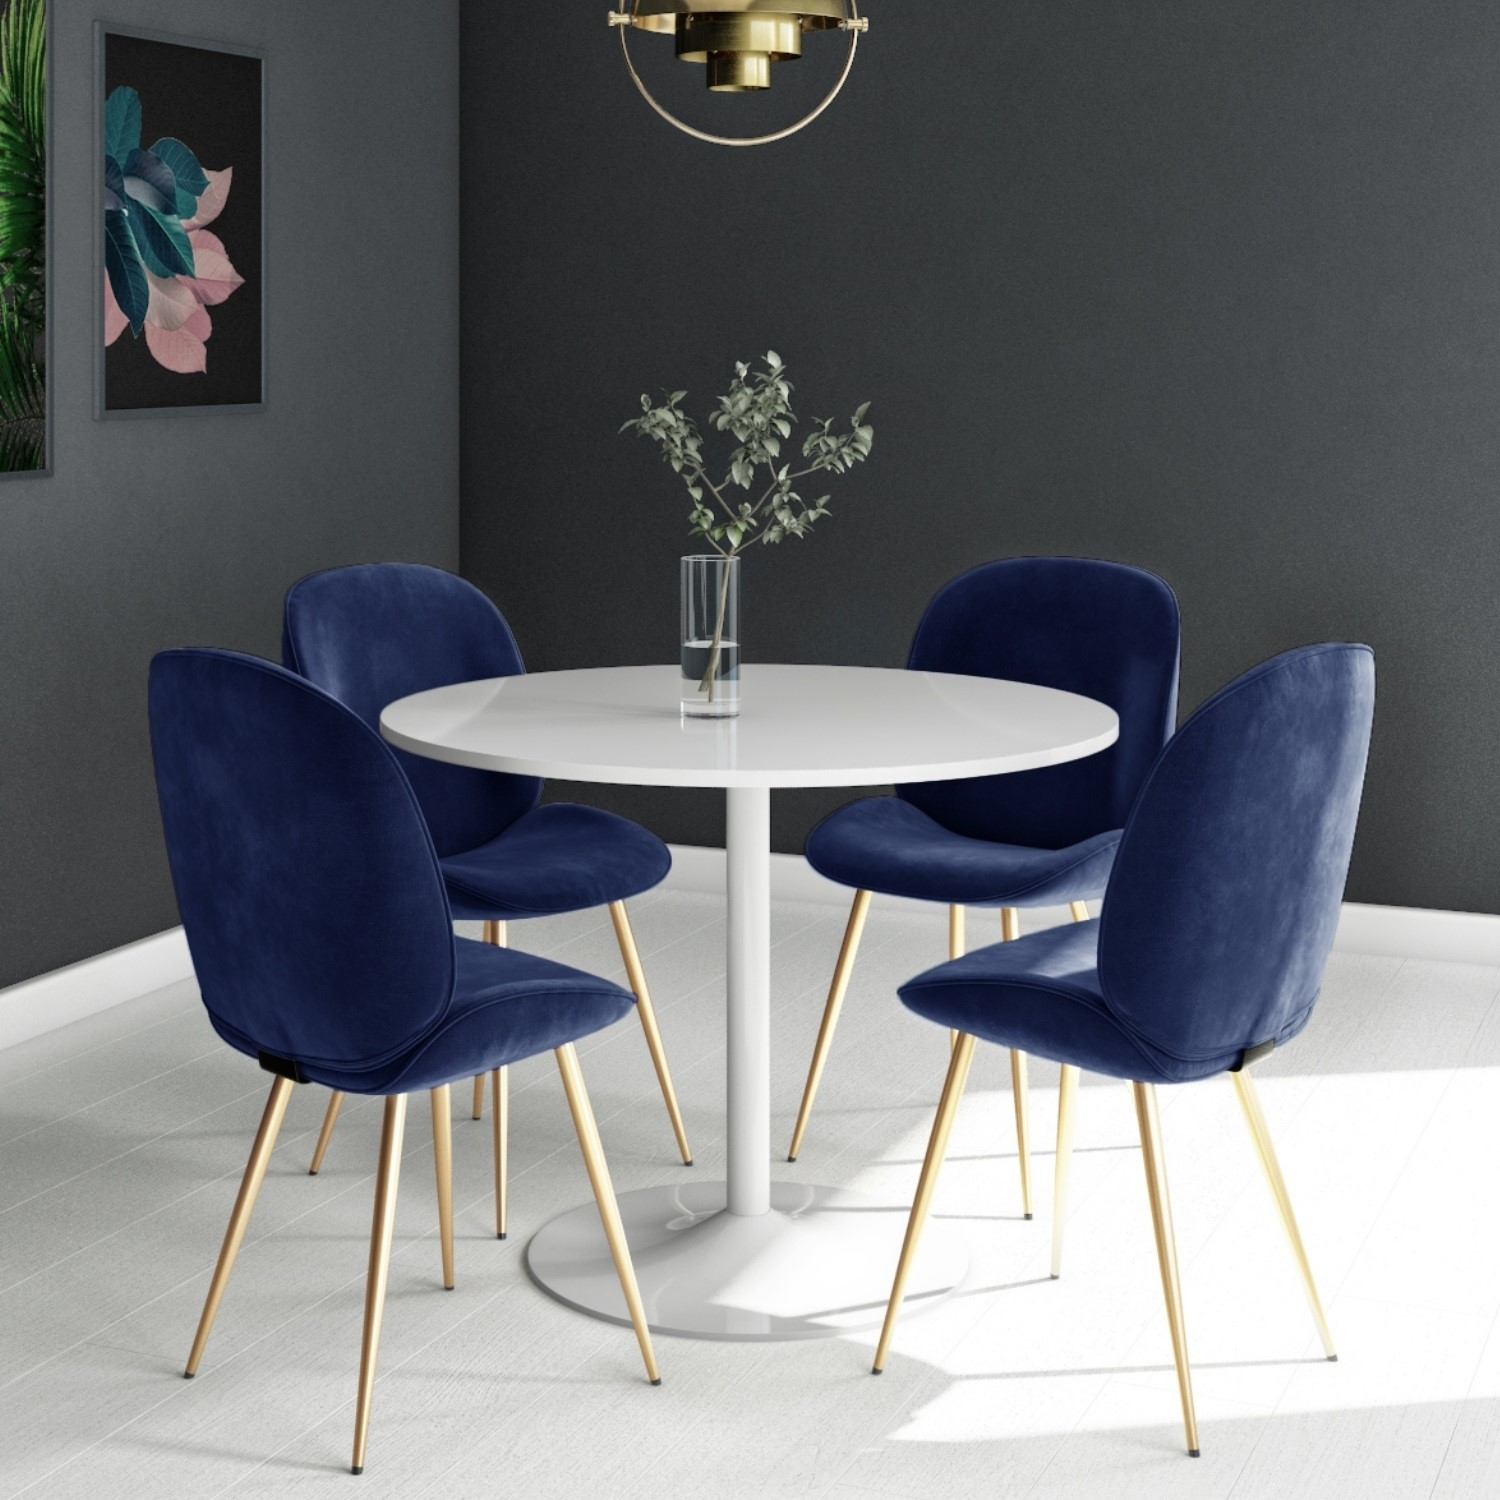 Jenna White Round Table 4 Chairs In Blue Velvet With Gold Leg Bun Bla101 76481 Ebay